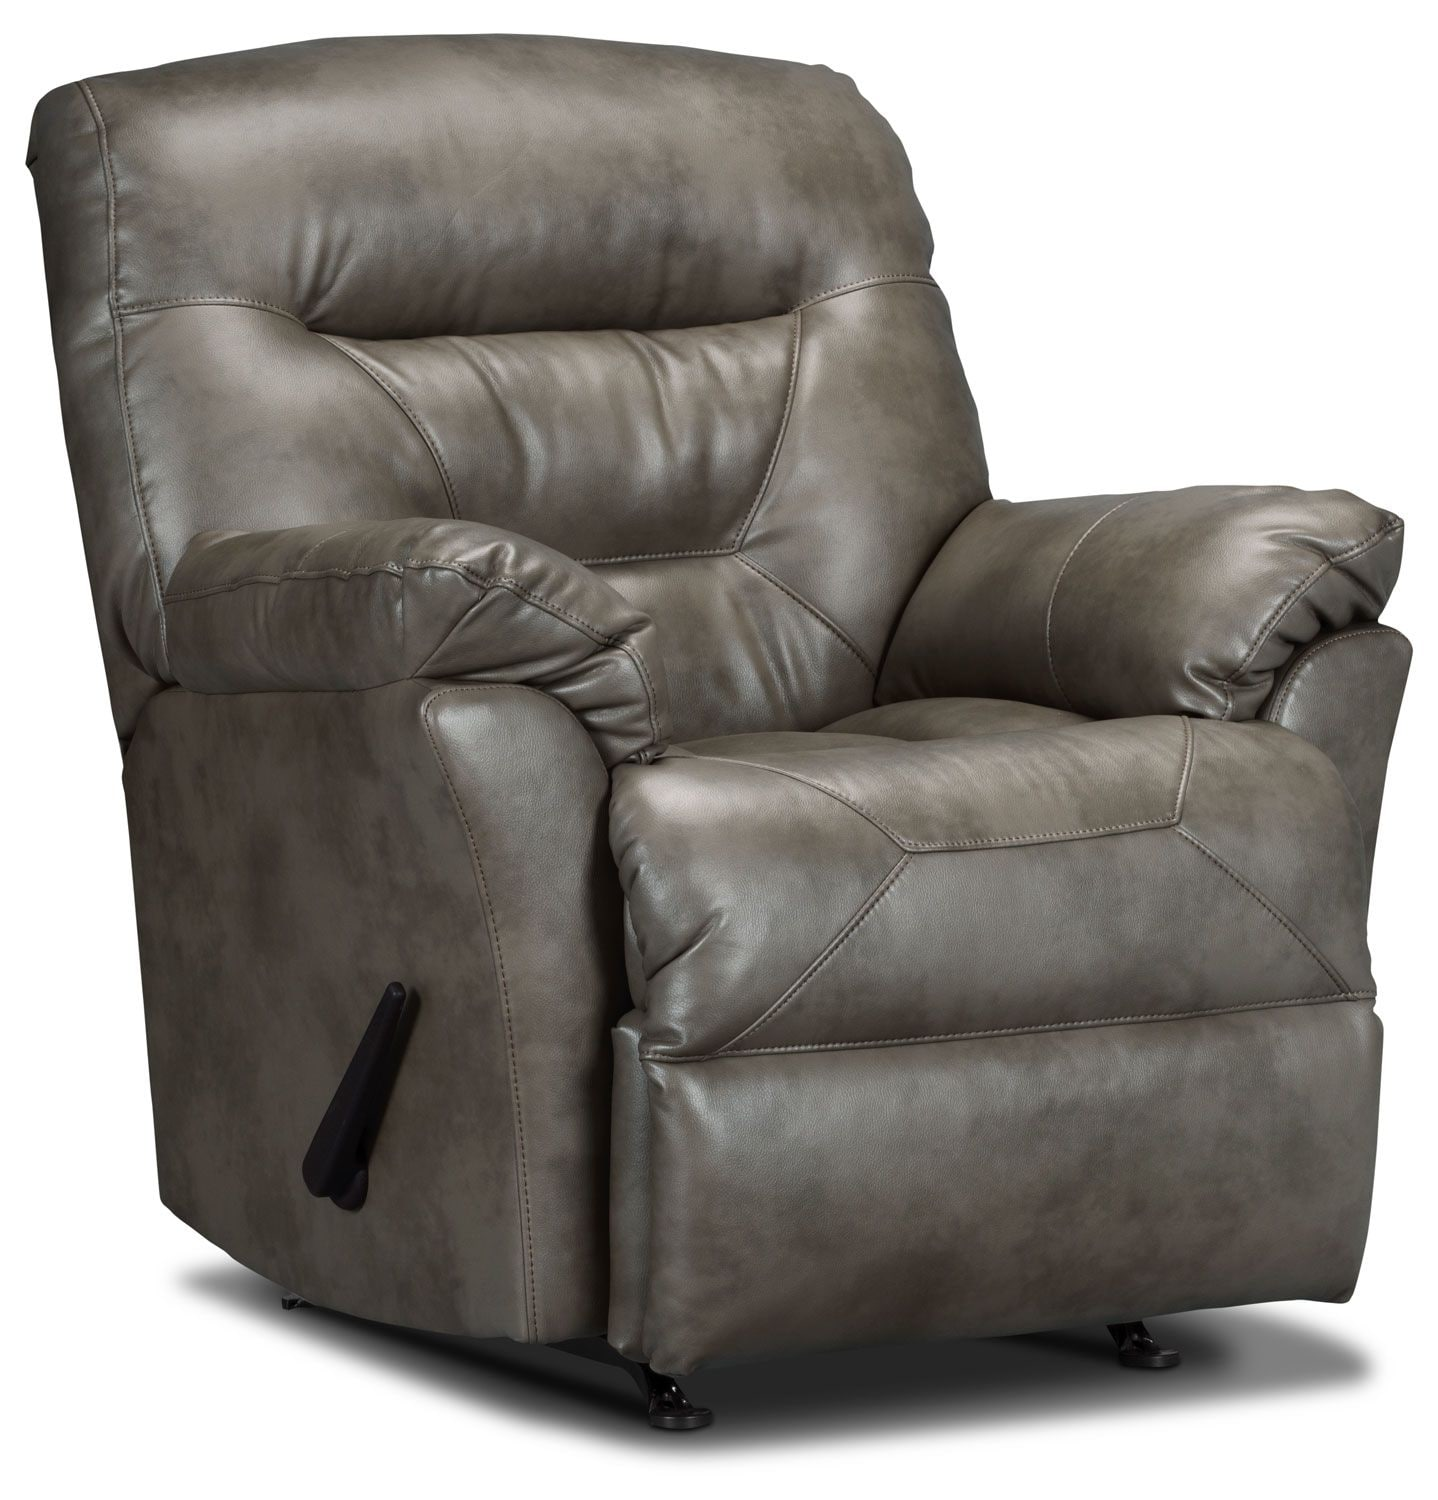 Living Room Furniture - Designed2B Recliner 4579 Leather-Look Fabric Rocker Recliner - Smoke